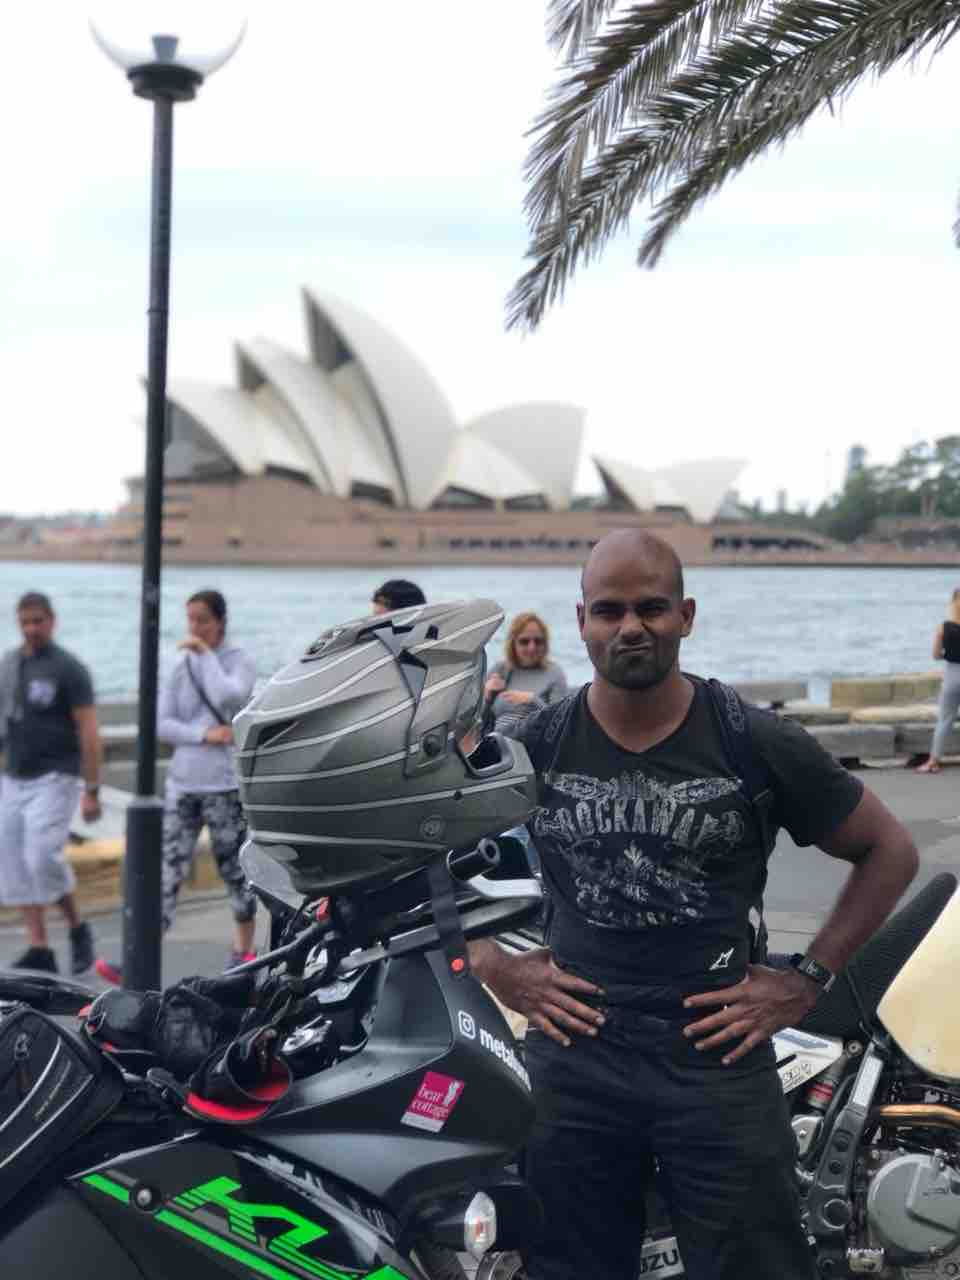 Lincoln with his Kawasaki KLR 650 in Sydney, Australia